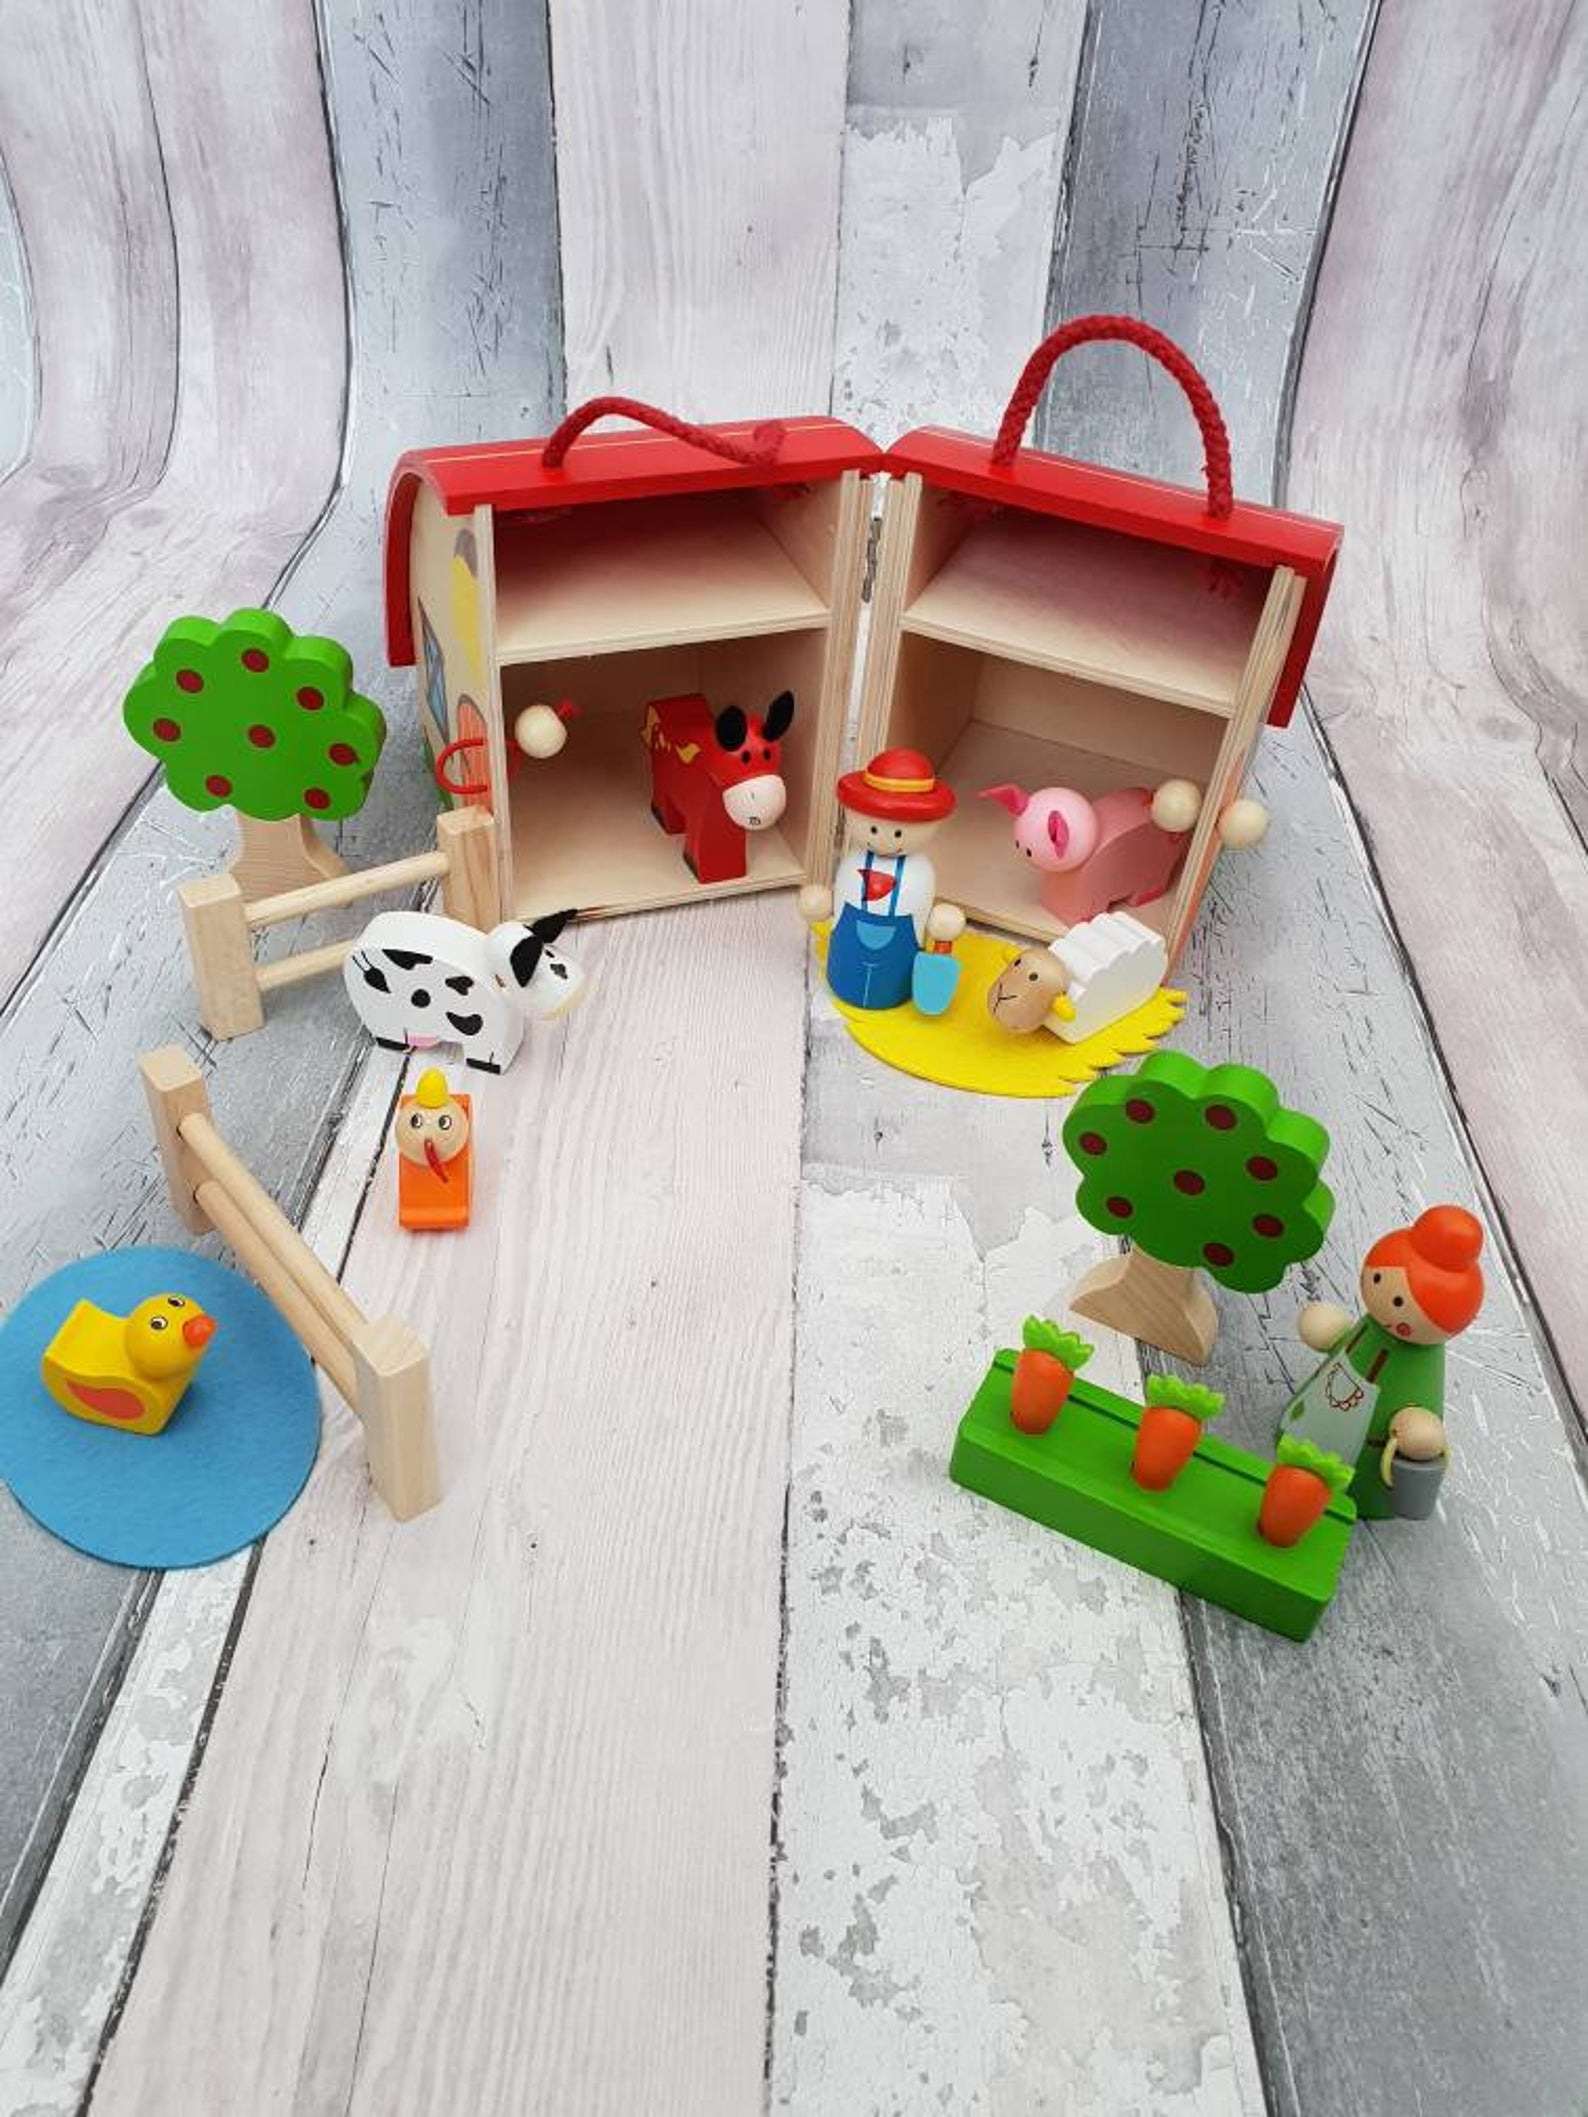 Wooden farm set toy personalized ETSY